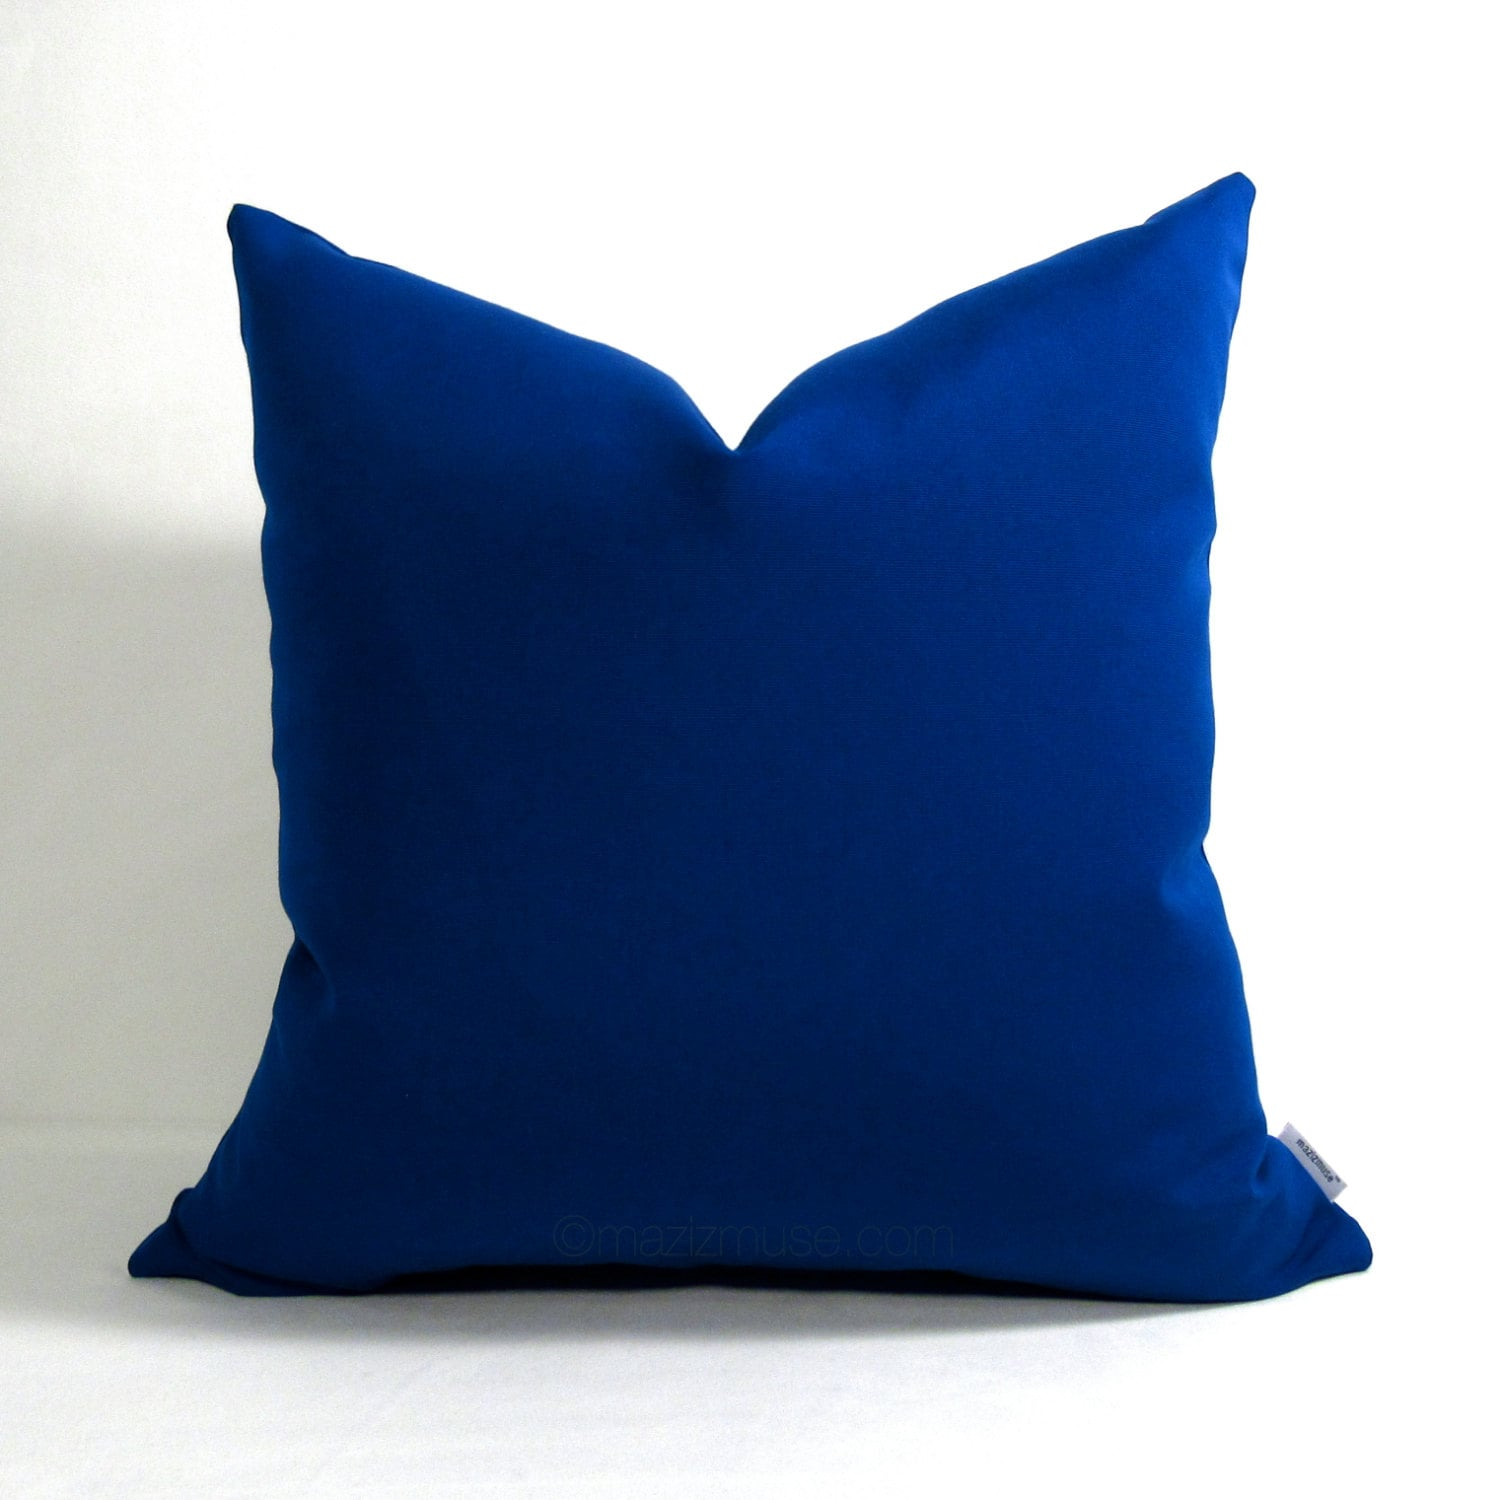 Throw Pillows Royal Blue : Royal Blue Outdoor Pillow Cover Decorative Sapphire Blue